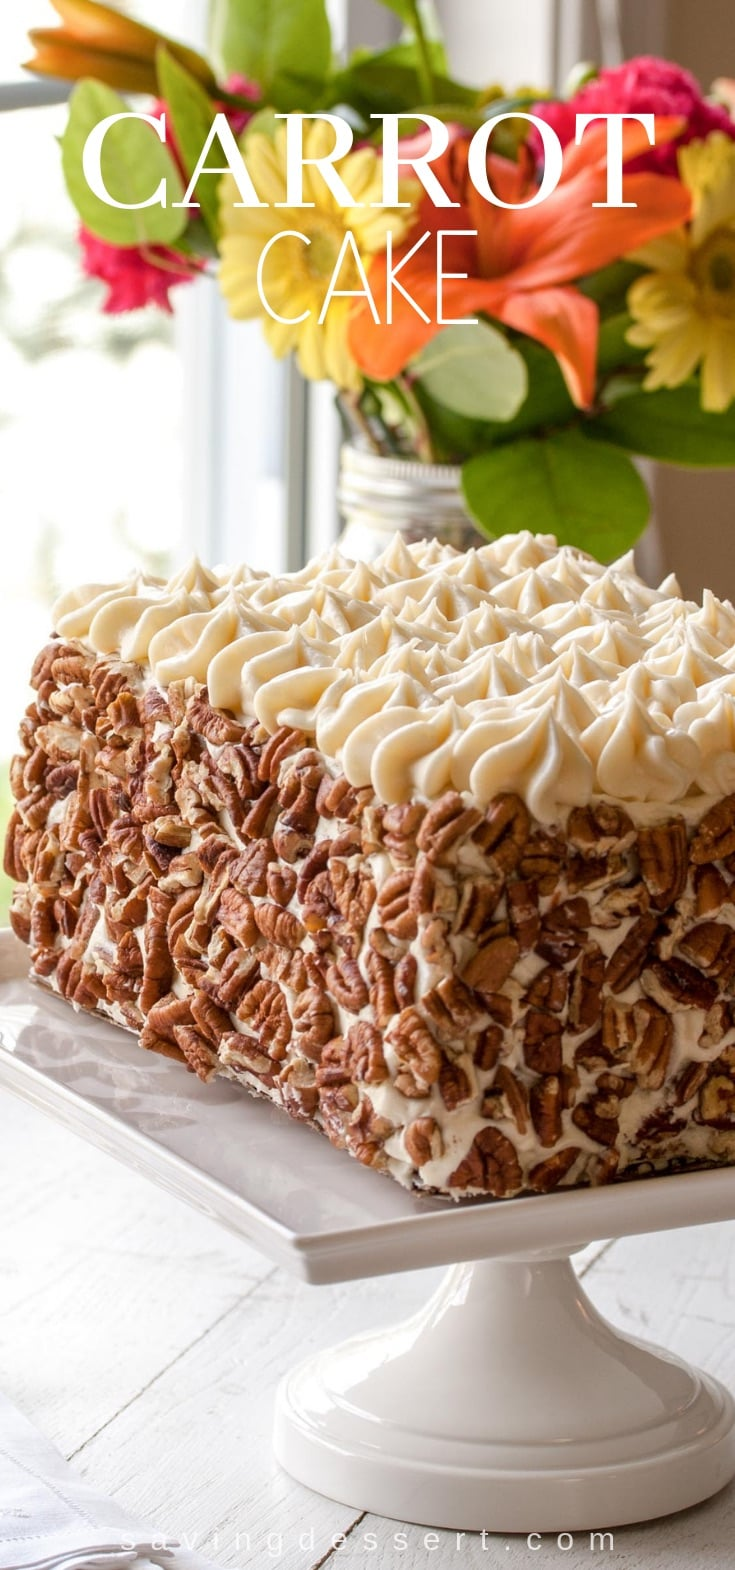 Classic Carrot Cake - a deliciously moist layer cake filled with carrots and topped with toasted pecans and a silky smooth cream cheese icing  #carrotcake #cake #creamcheeseicing #dessert #carrot #classiccake